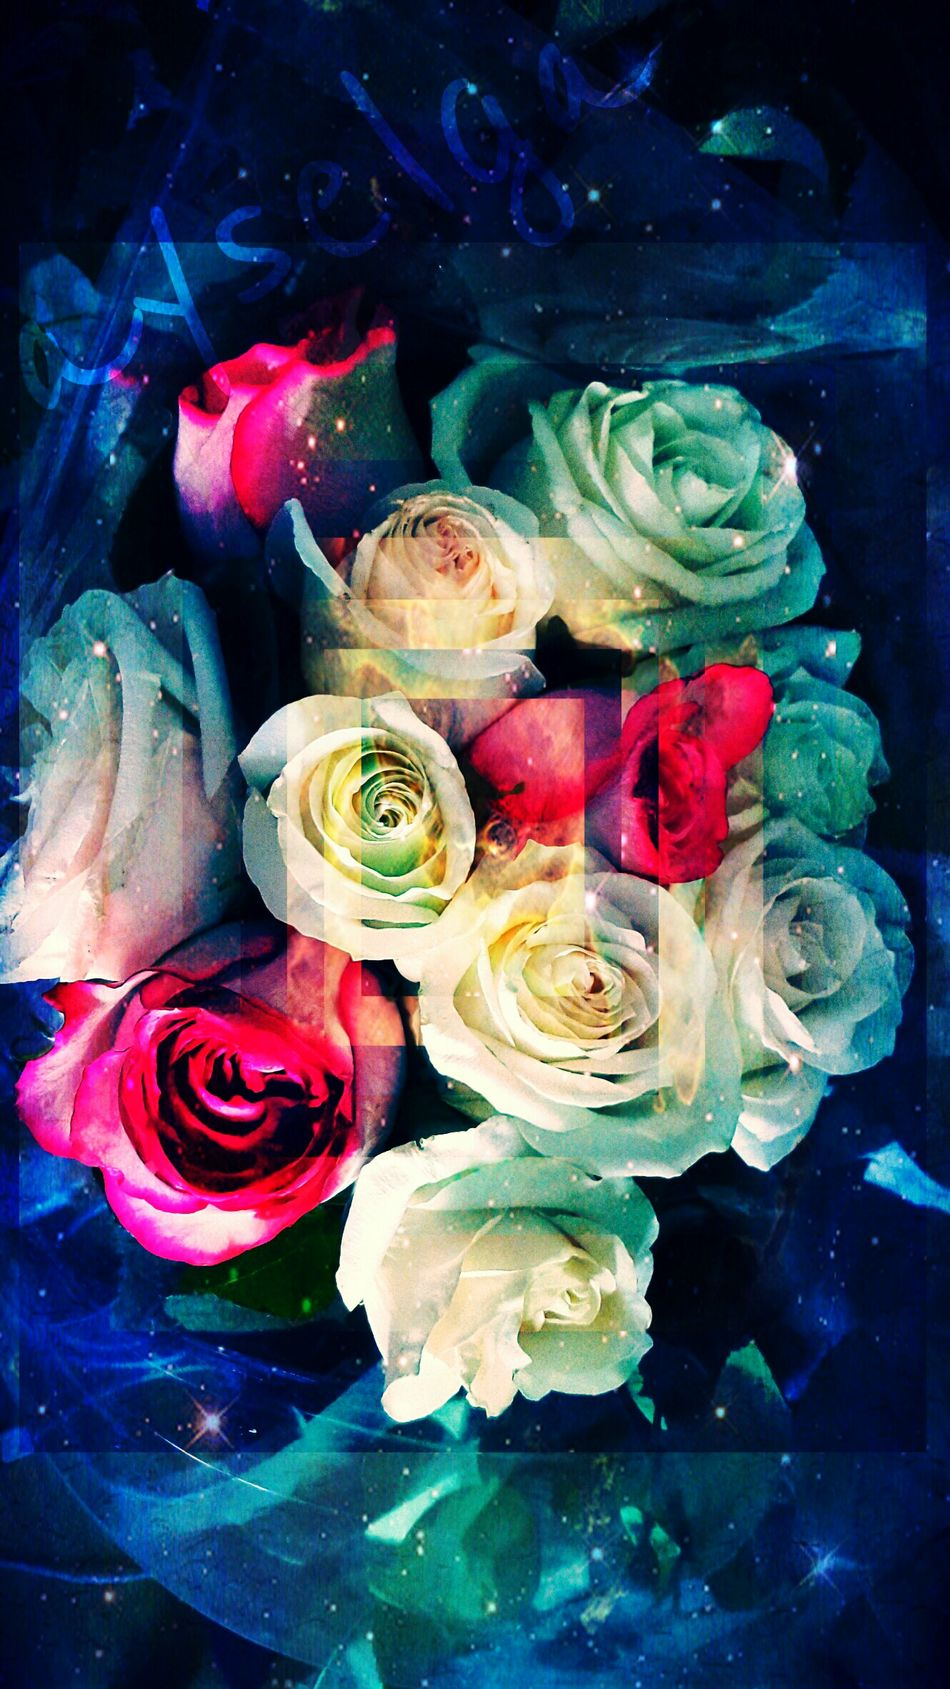 Flowers White Roses🌹🌹🌹 Romantic Beautiful Composition